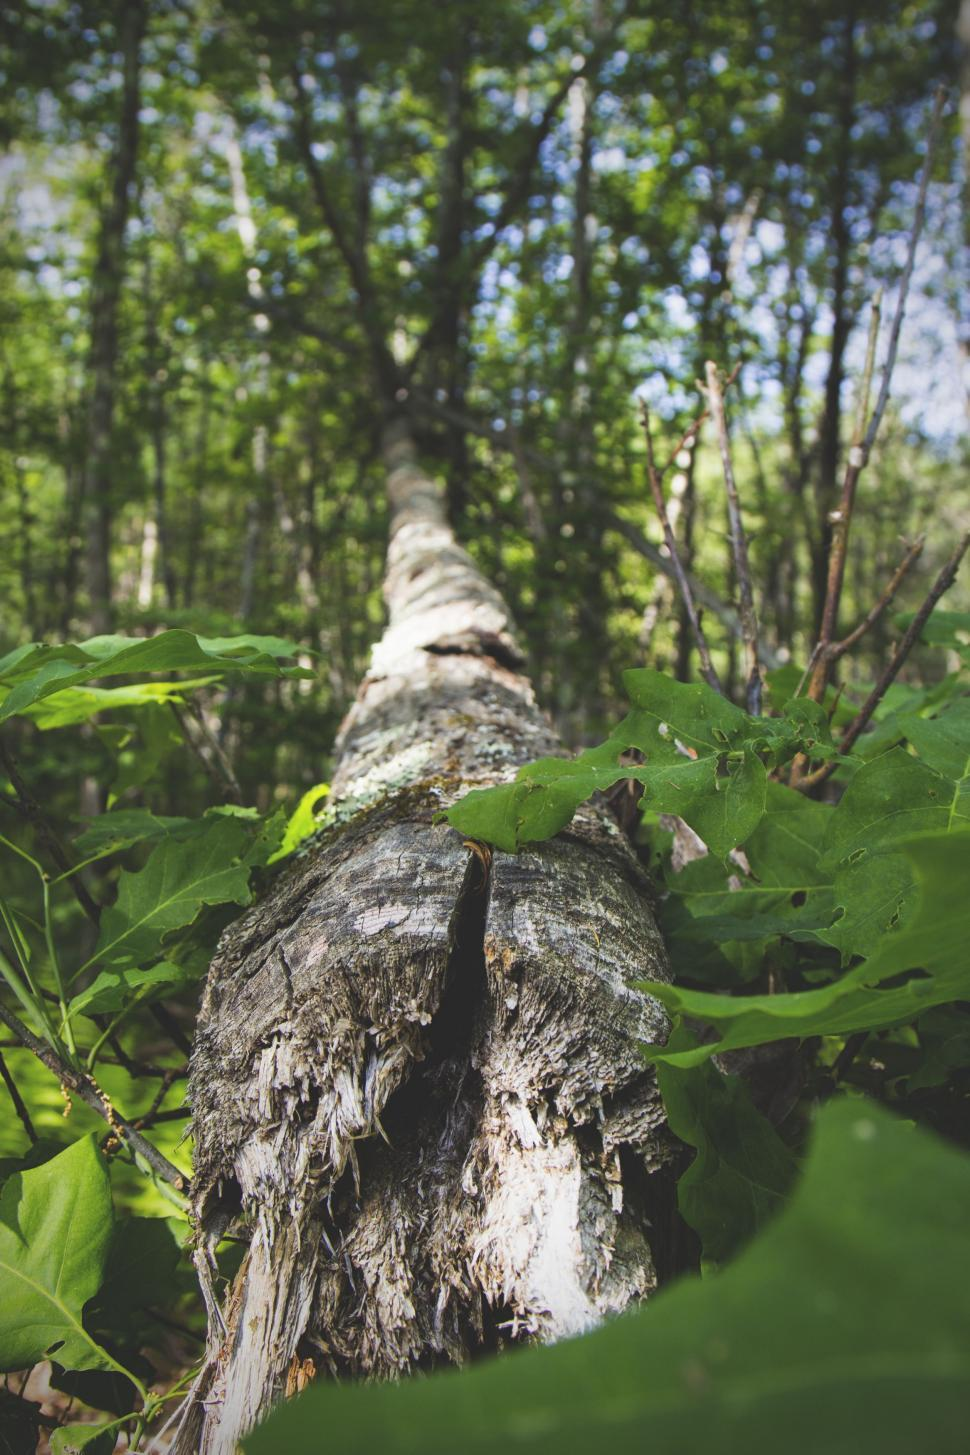 Download Free Stock Photo of three-toed sloth sloth tree plant fir forest fern landscape